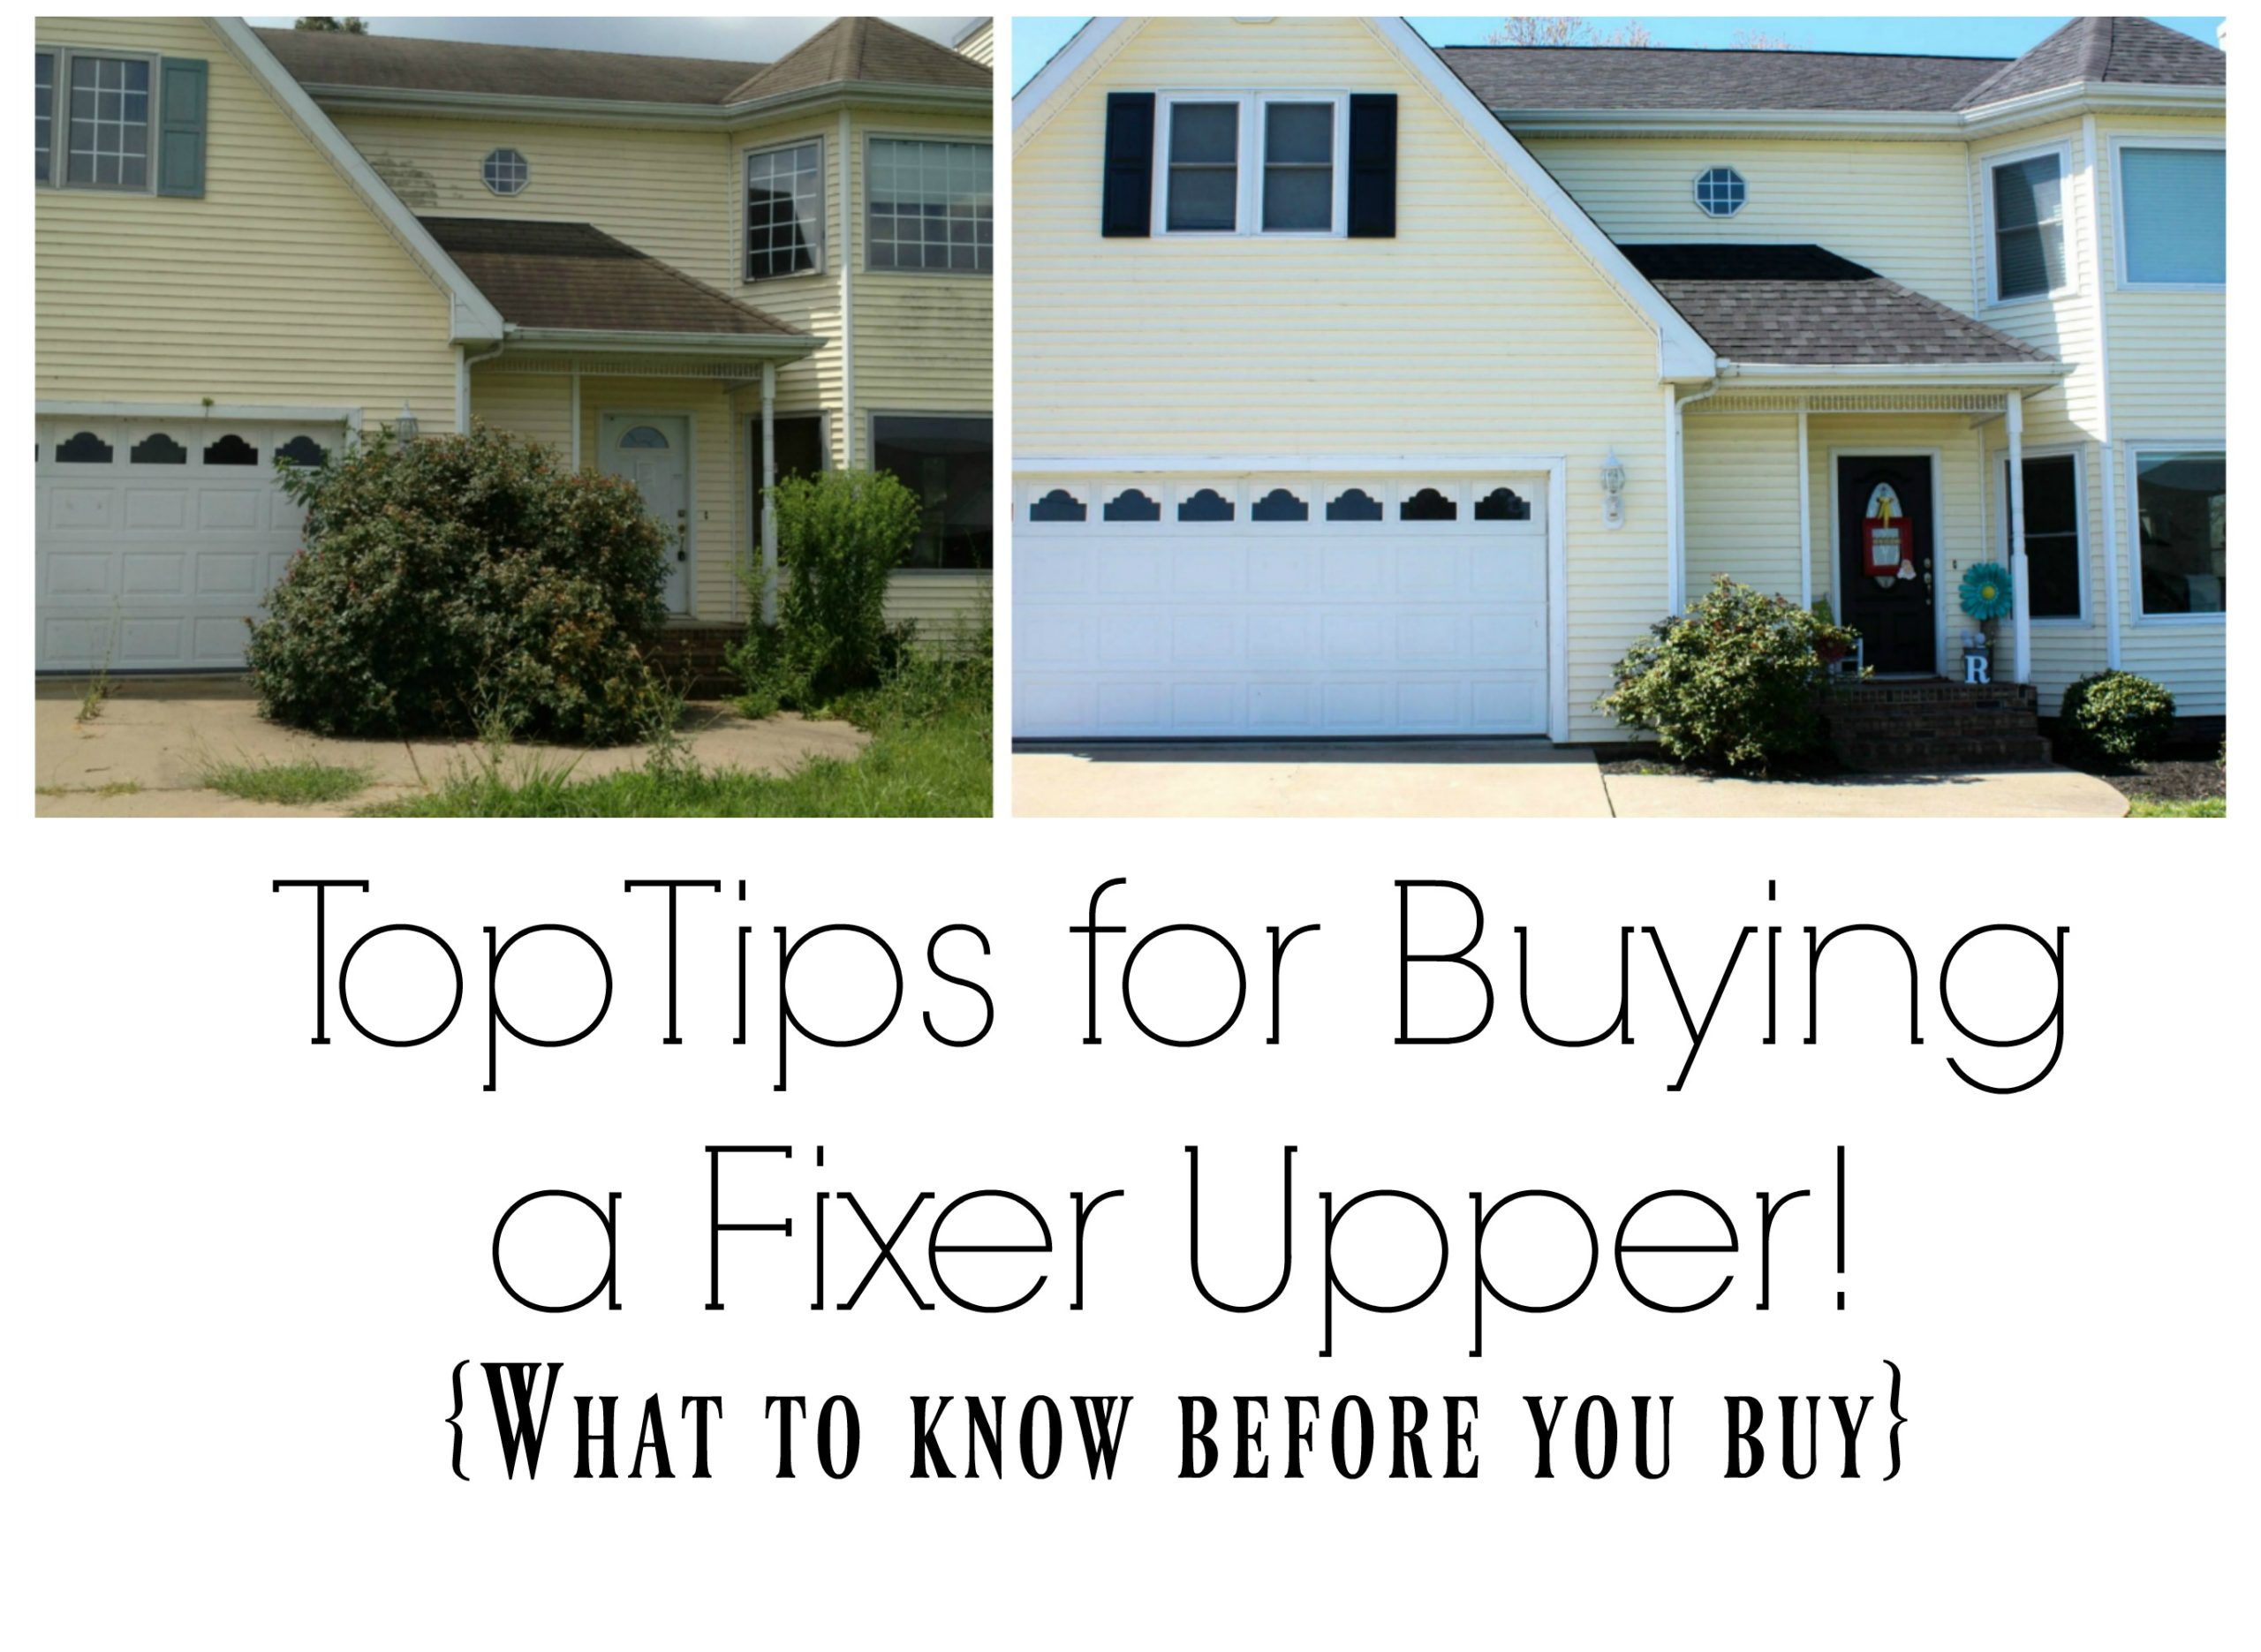 Top tips for buying a fixer upper re fabbed - Buying a fixer upper ...